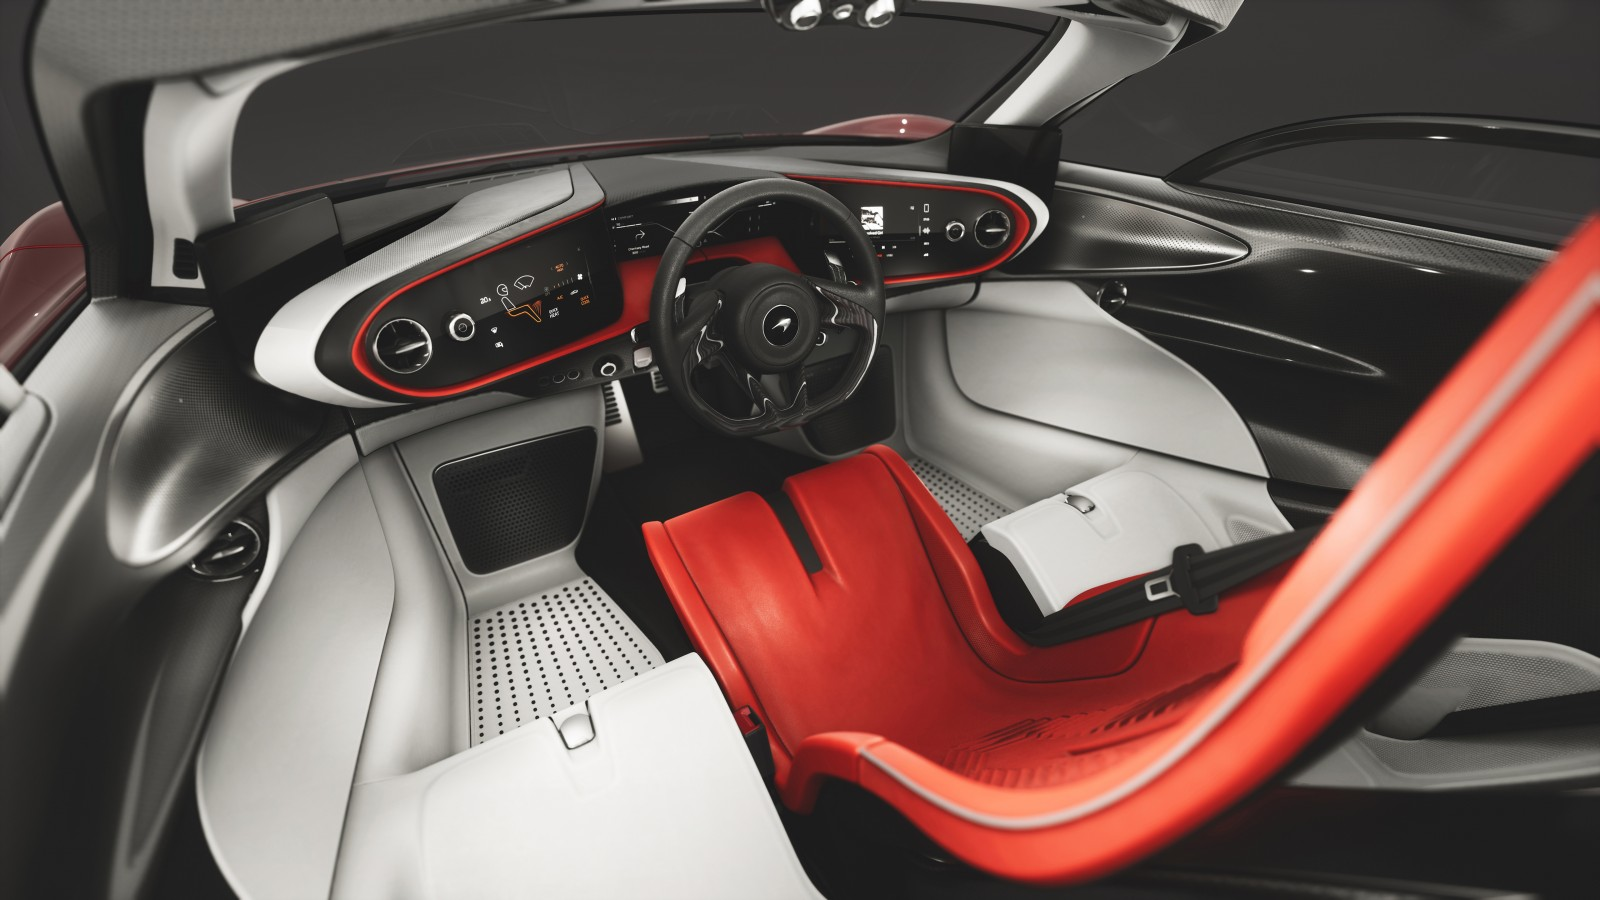 Bmw M Wallpaper Iphone X Mclaren Speedtail Interior 2019 4k 5k Wallpaper Hd Car